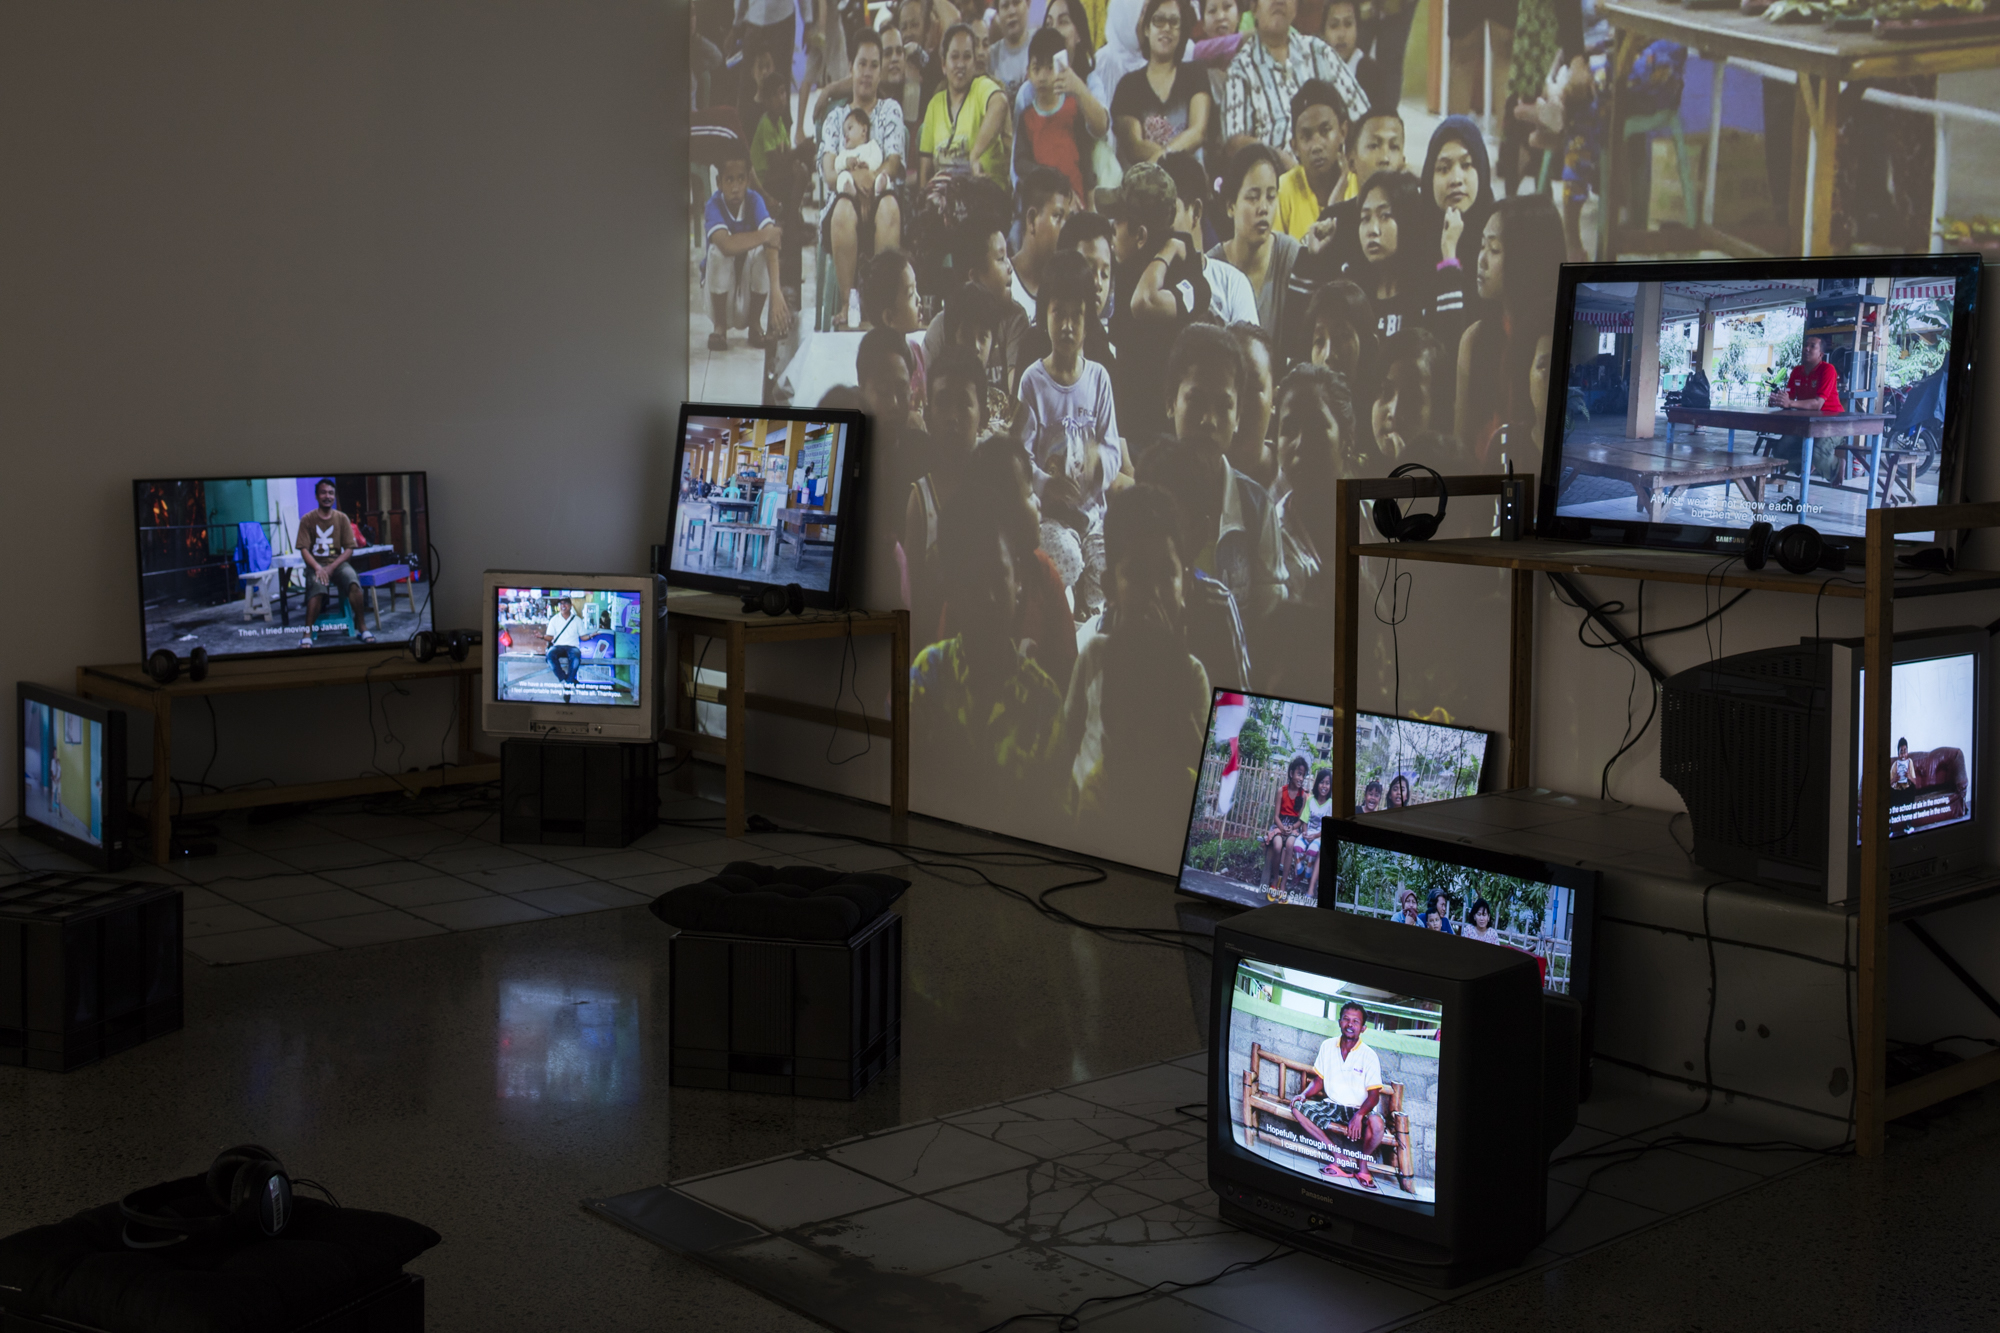 Dieneke Jansen, Marunda: Dwelling on the Stoep (2015) Video projection, duration 35:40 Nine videos on monitors, duration varies from 5:04 – 16:52